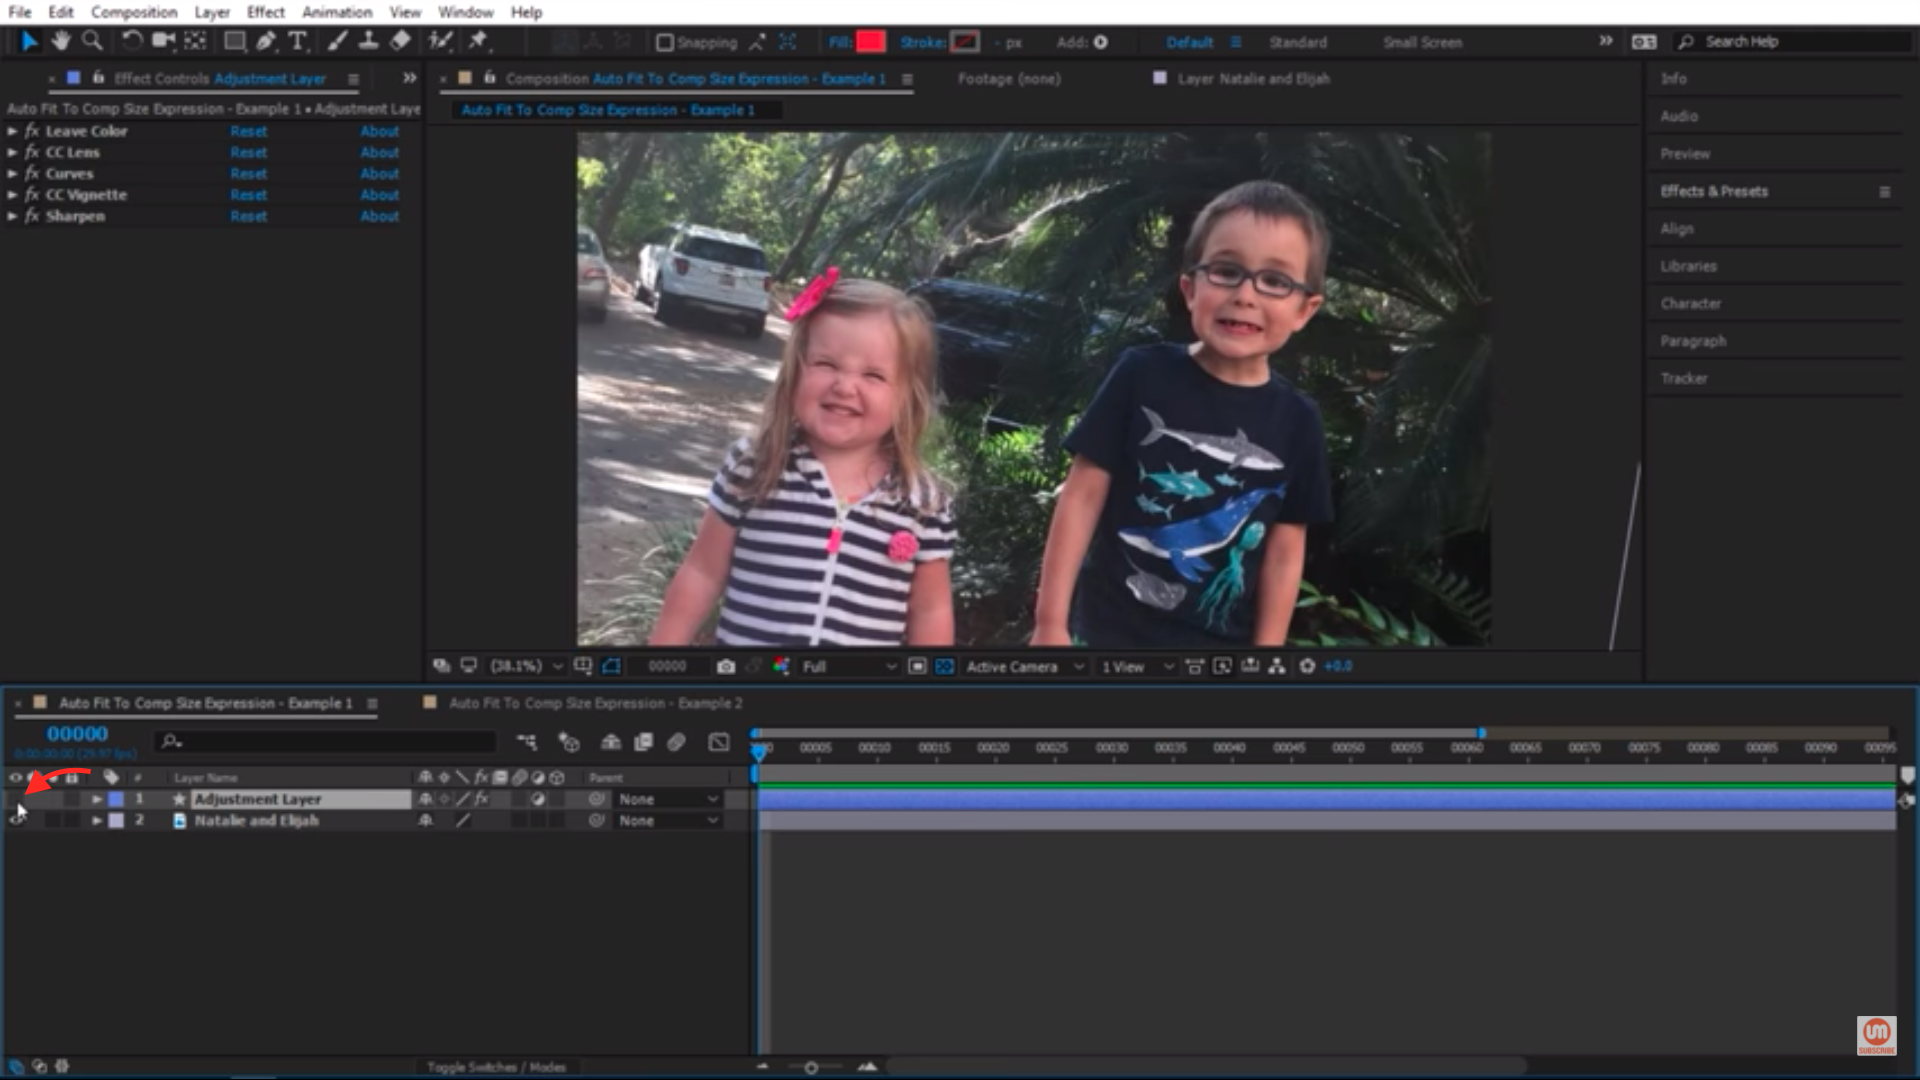 Turn off adjustment layer in After Effects